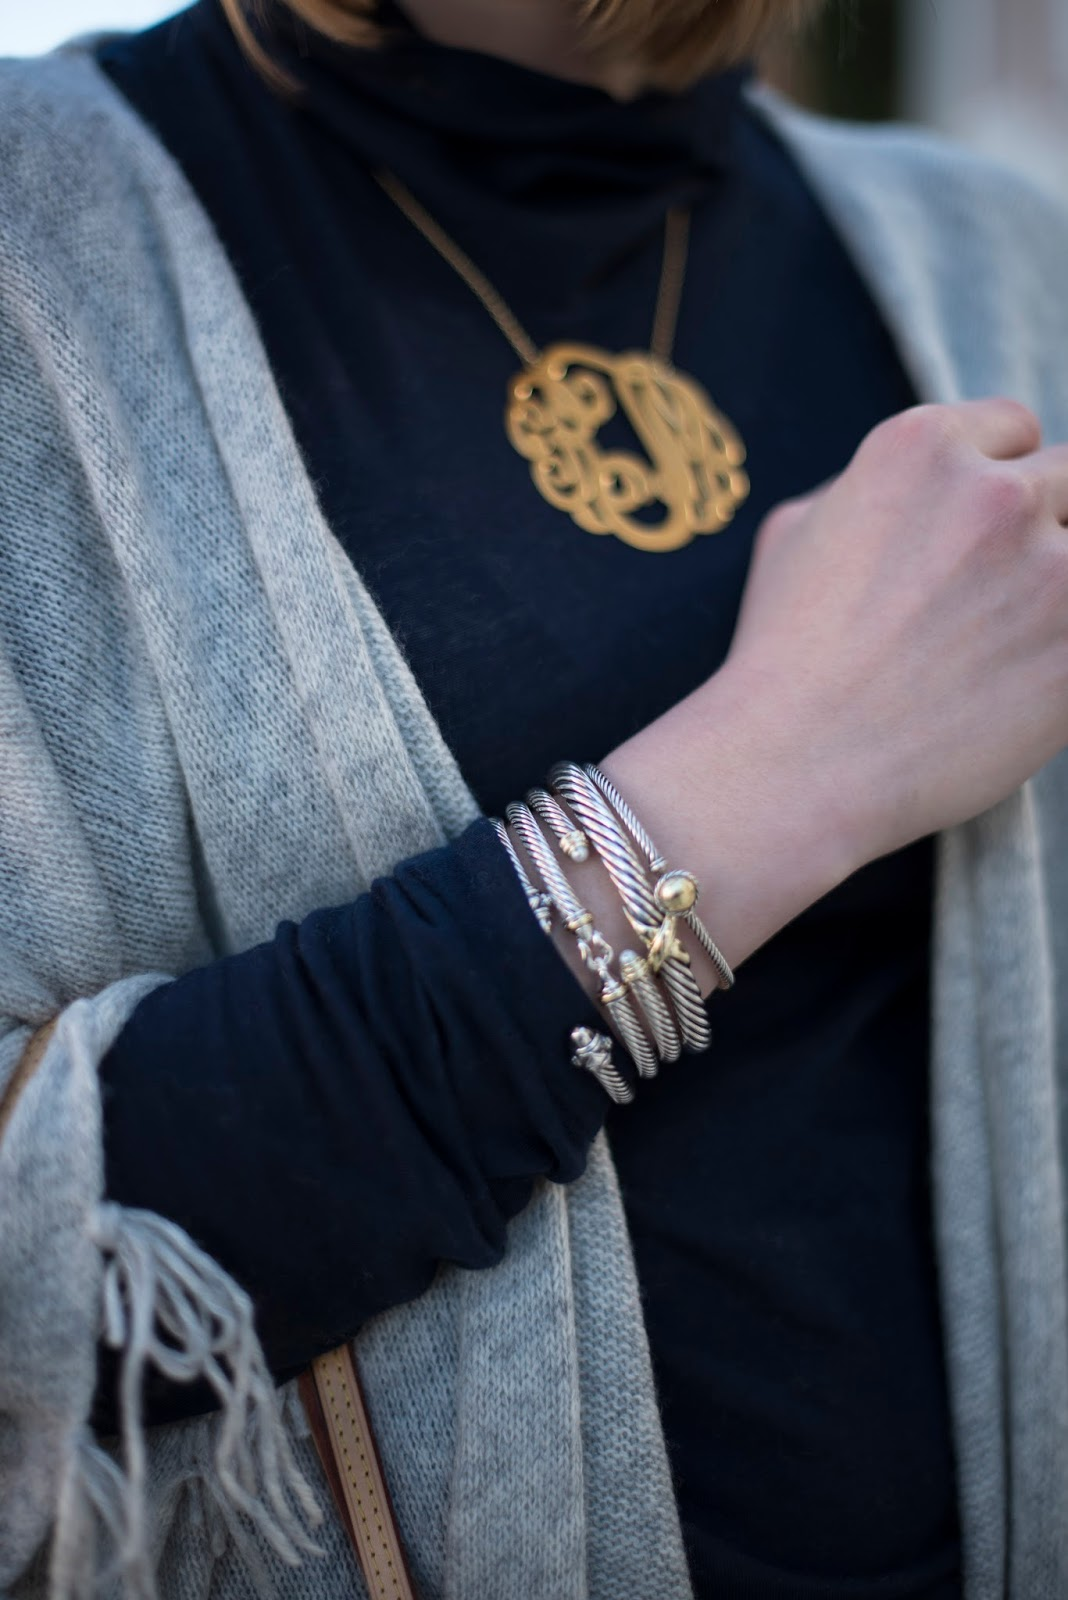 Yurman Bracelet - Something Delightful Blog